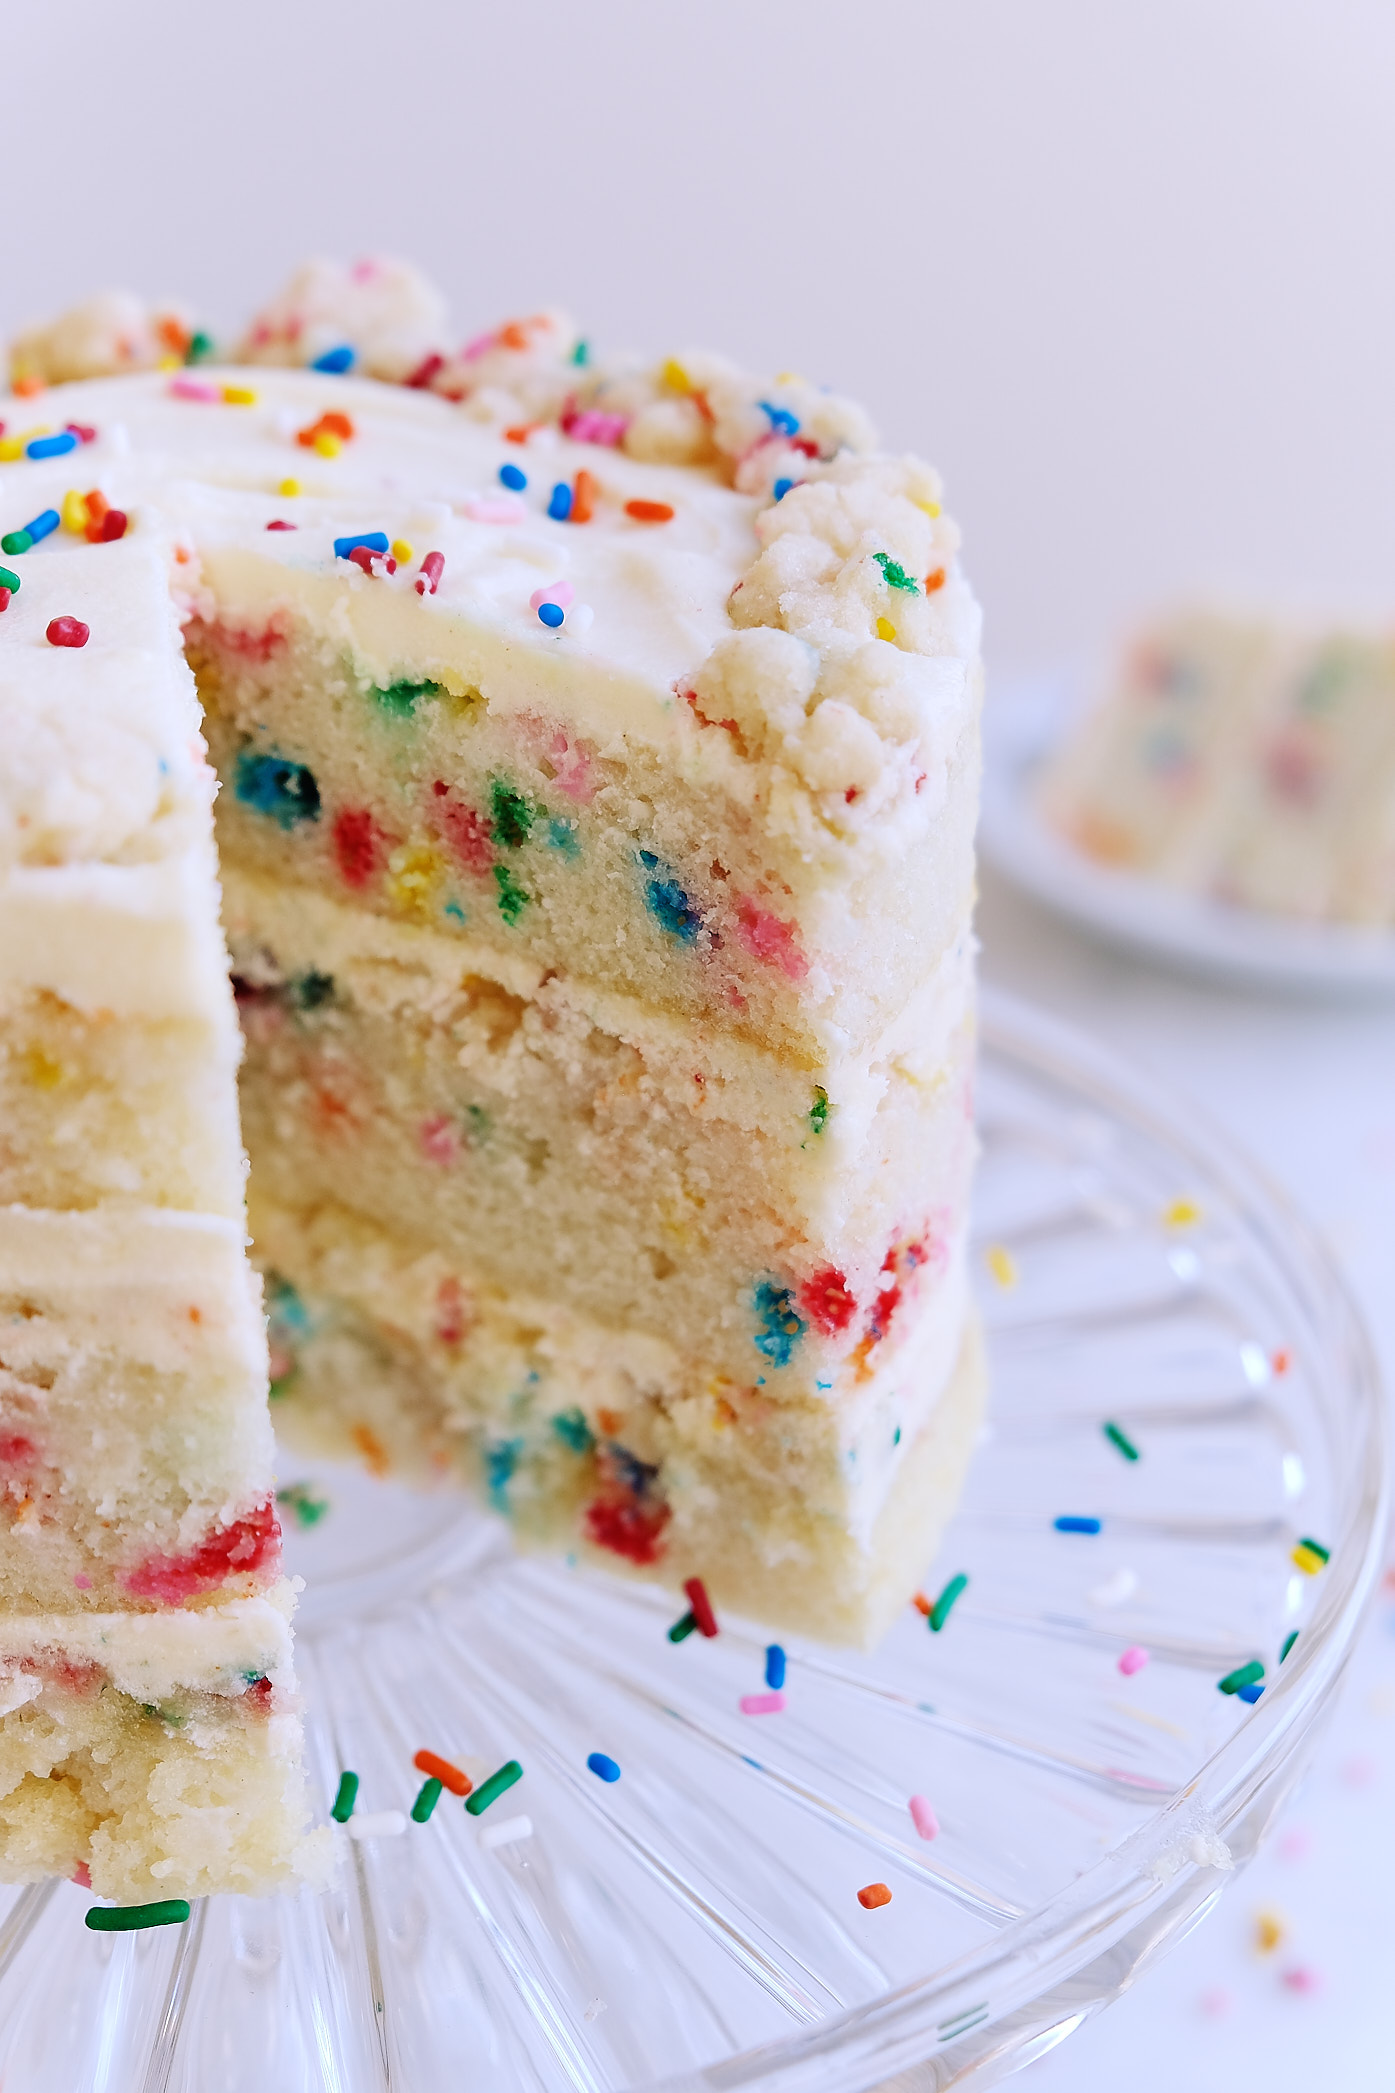 A side view inside a dairy-free egg-free Milk Bar Birthday Cake on a cake stand.